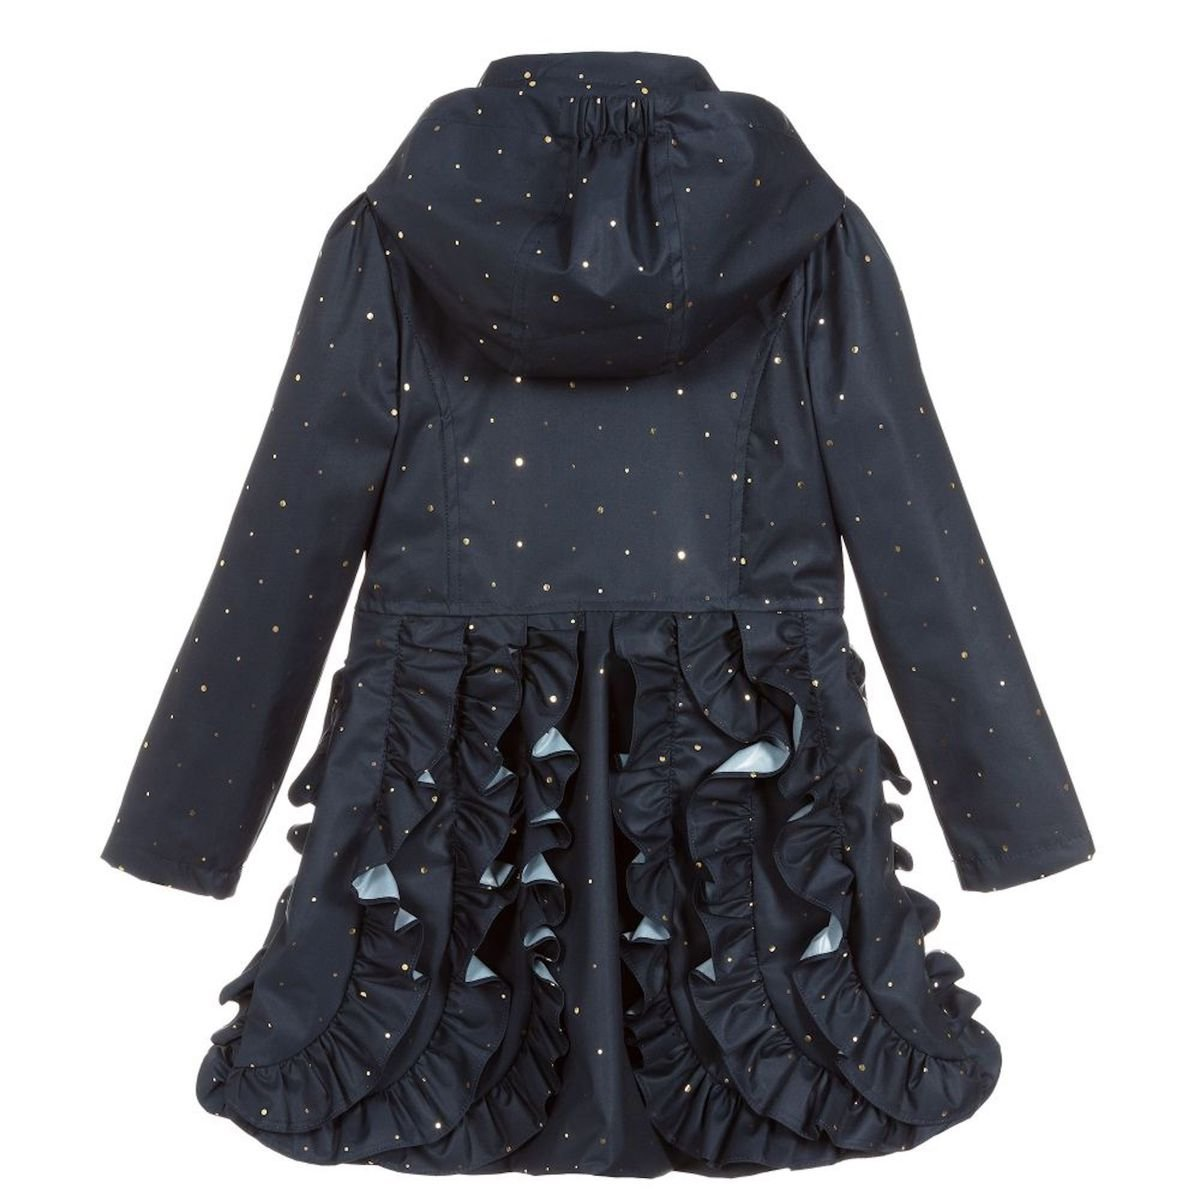 663a839d9da1 S19LC3 Le Chic Navy Blue Ruffle Coat with Gold Dots – Buttoned Up ...